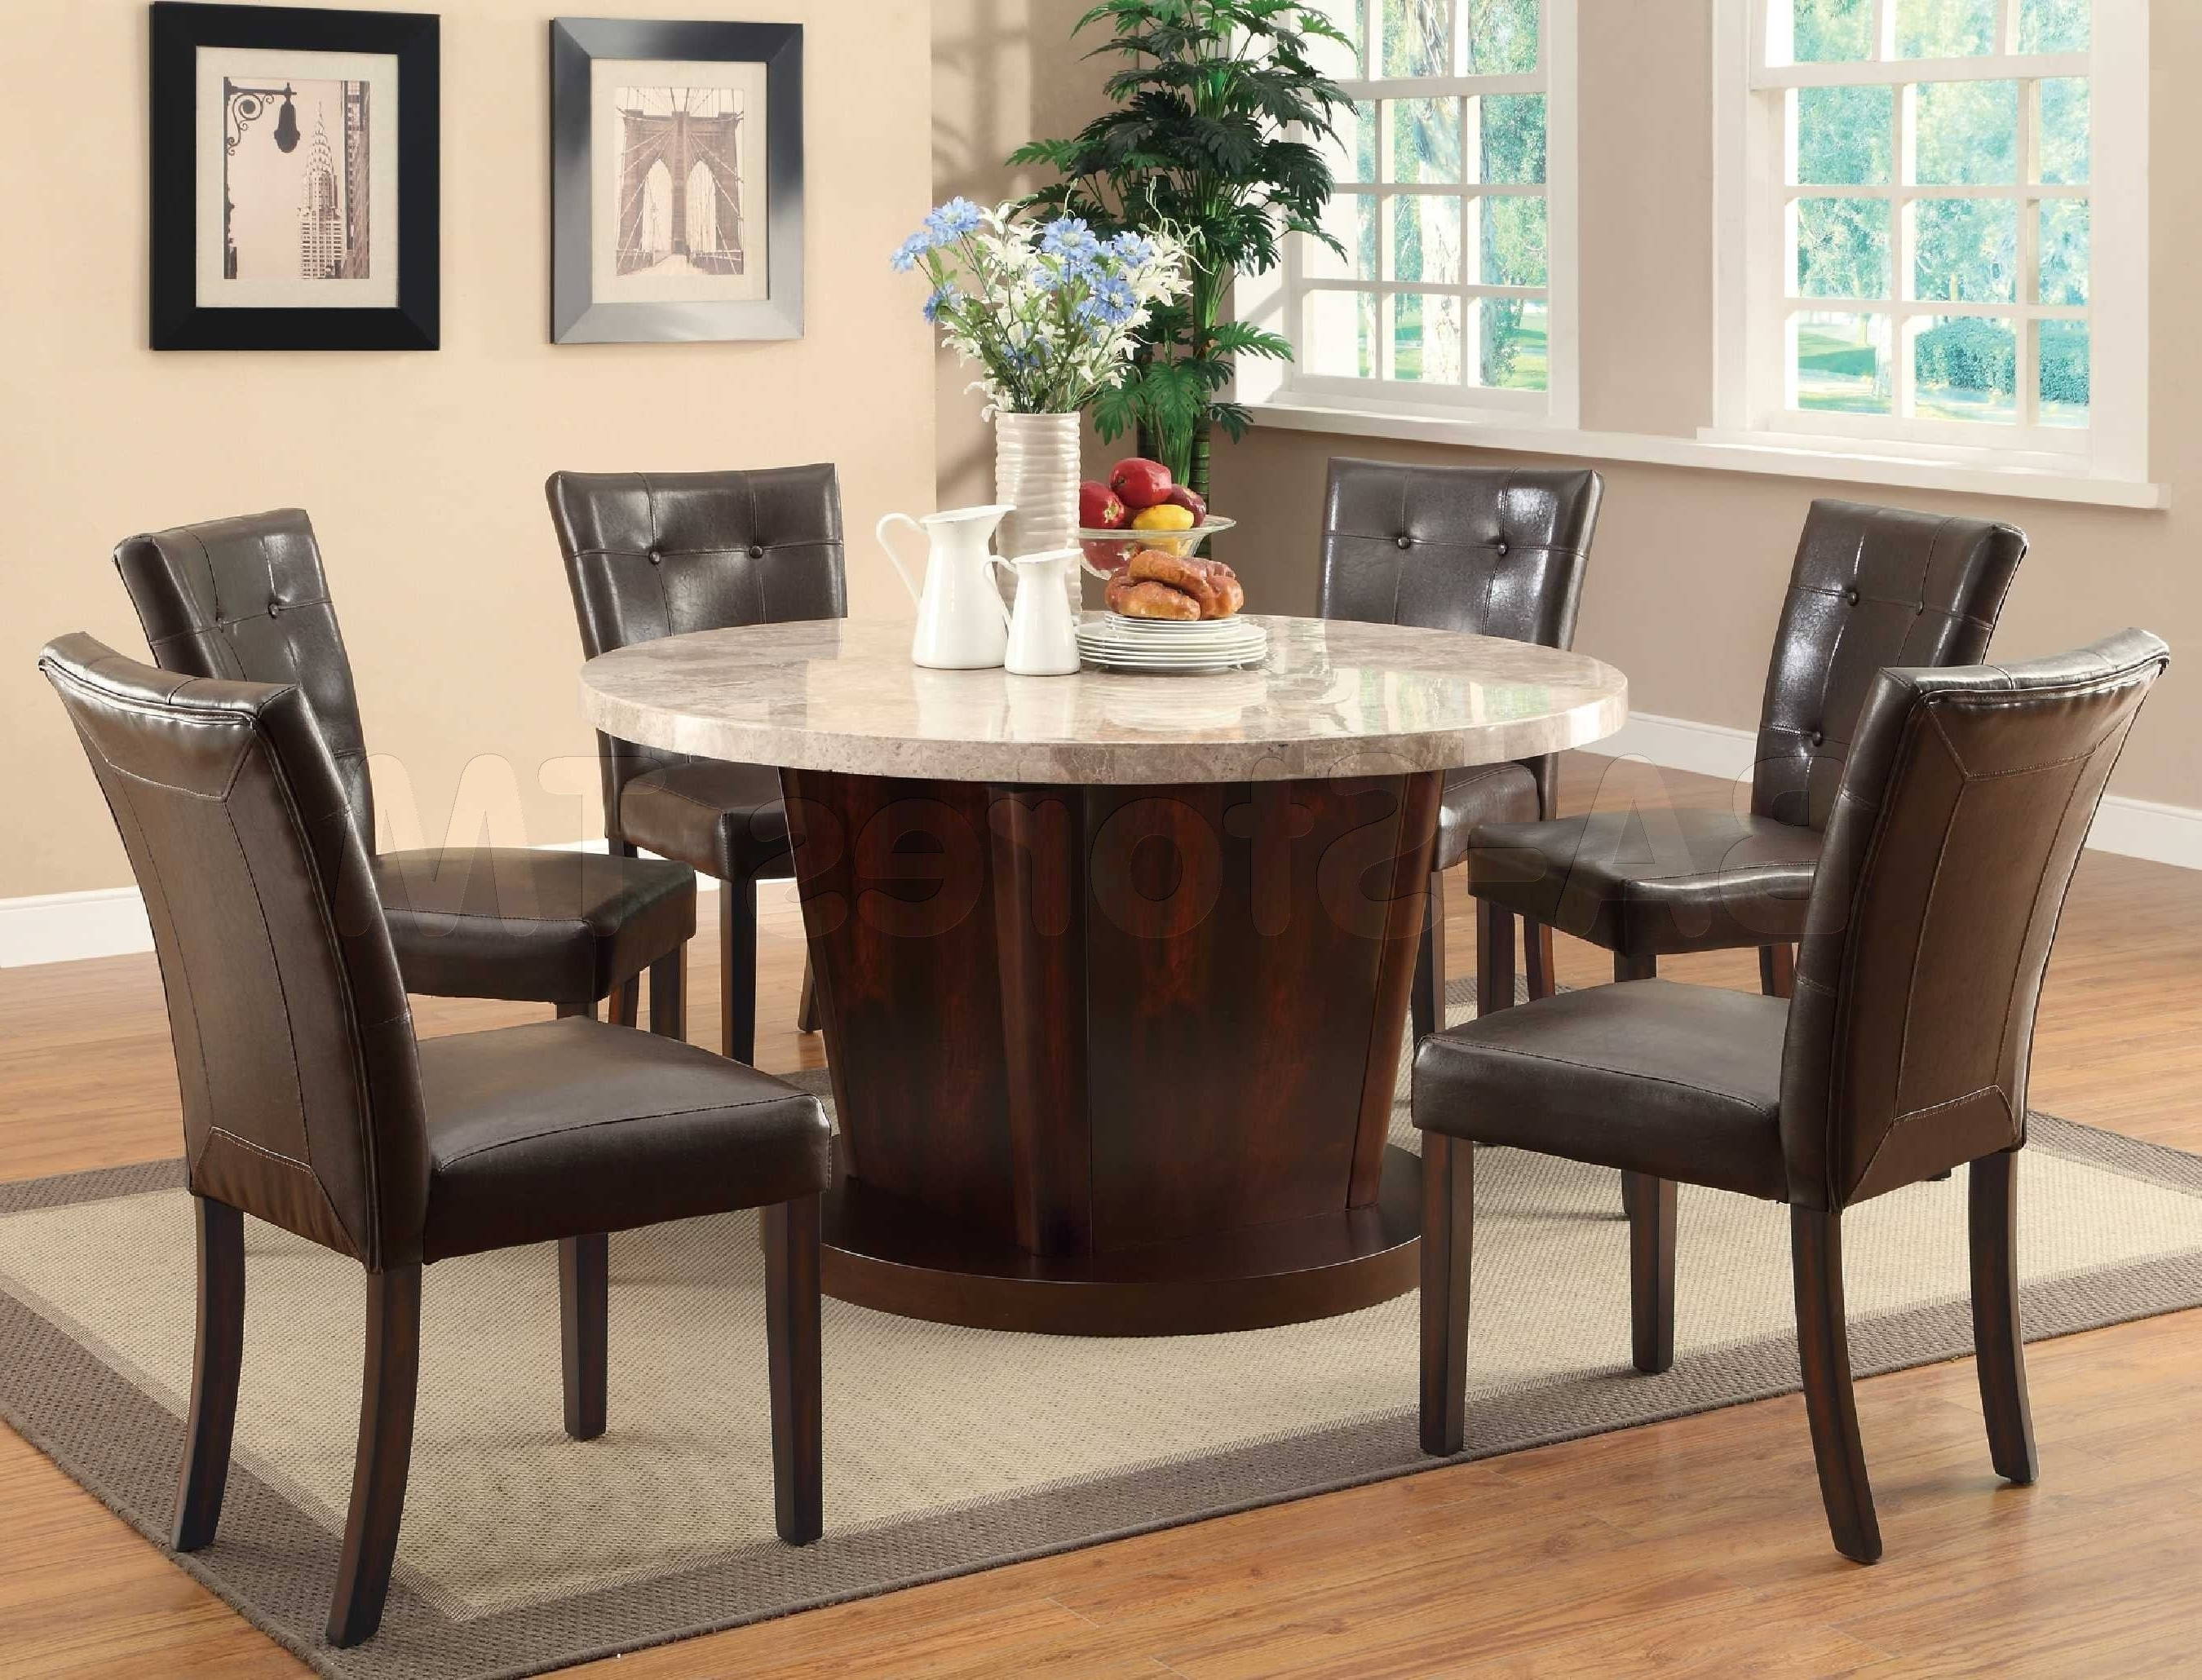 2017 Norwood 9 Piece Rectangular Extension Dining Sets With Uph Side Chairs Regarding Low Cost Dining Room Tables (View 21 of 25)